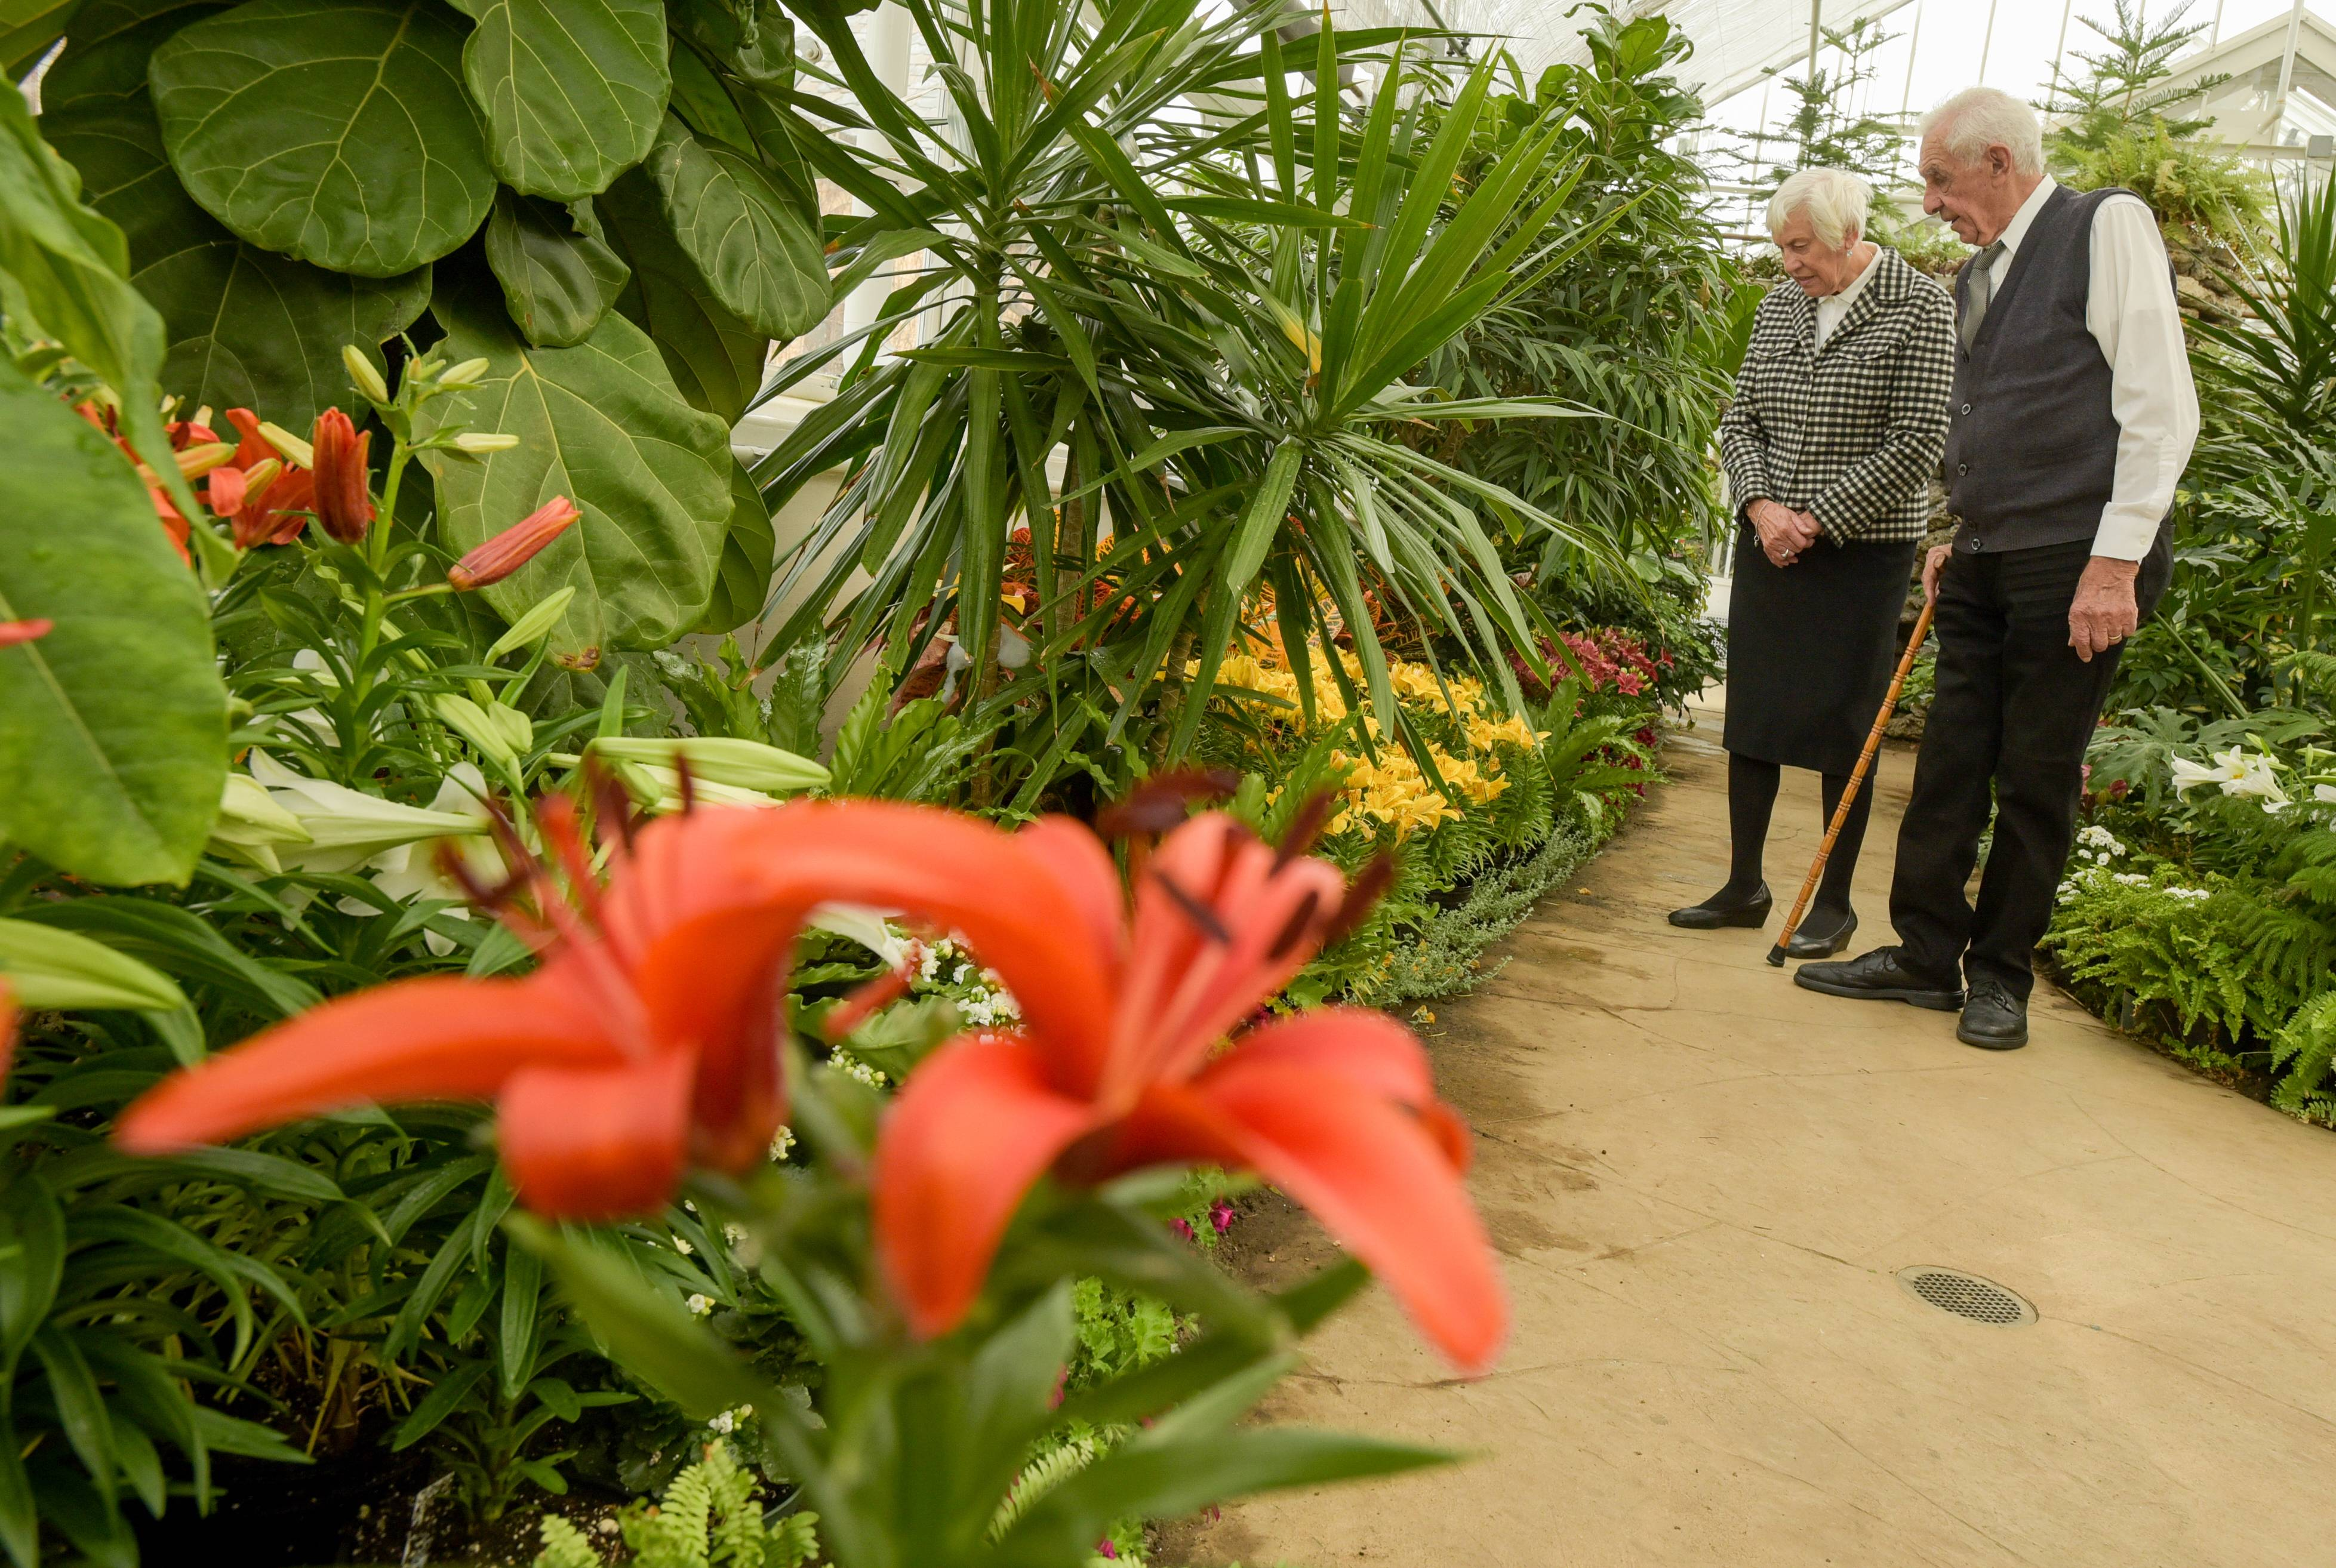 Maria and Max Bucher of Addison check out the flowers Sunday in the Elmhurst Park District's Wilder Park Conservatory. The conservatory's annual Spring Flower Show run opened this weekend and runs through the end of the month.